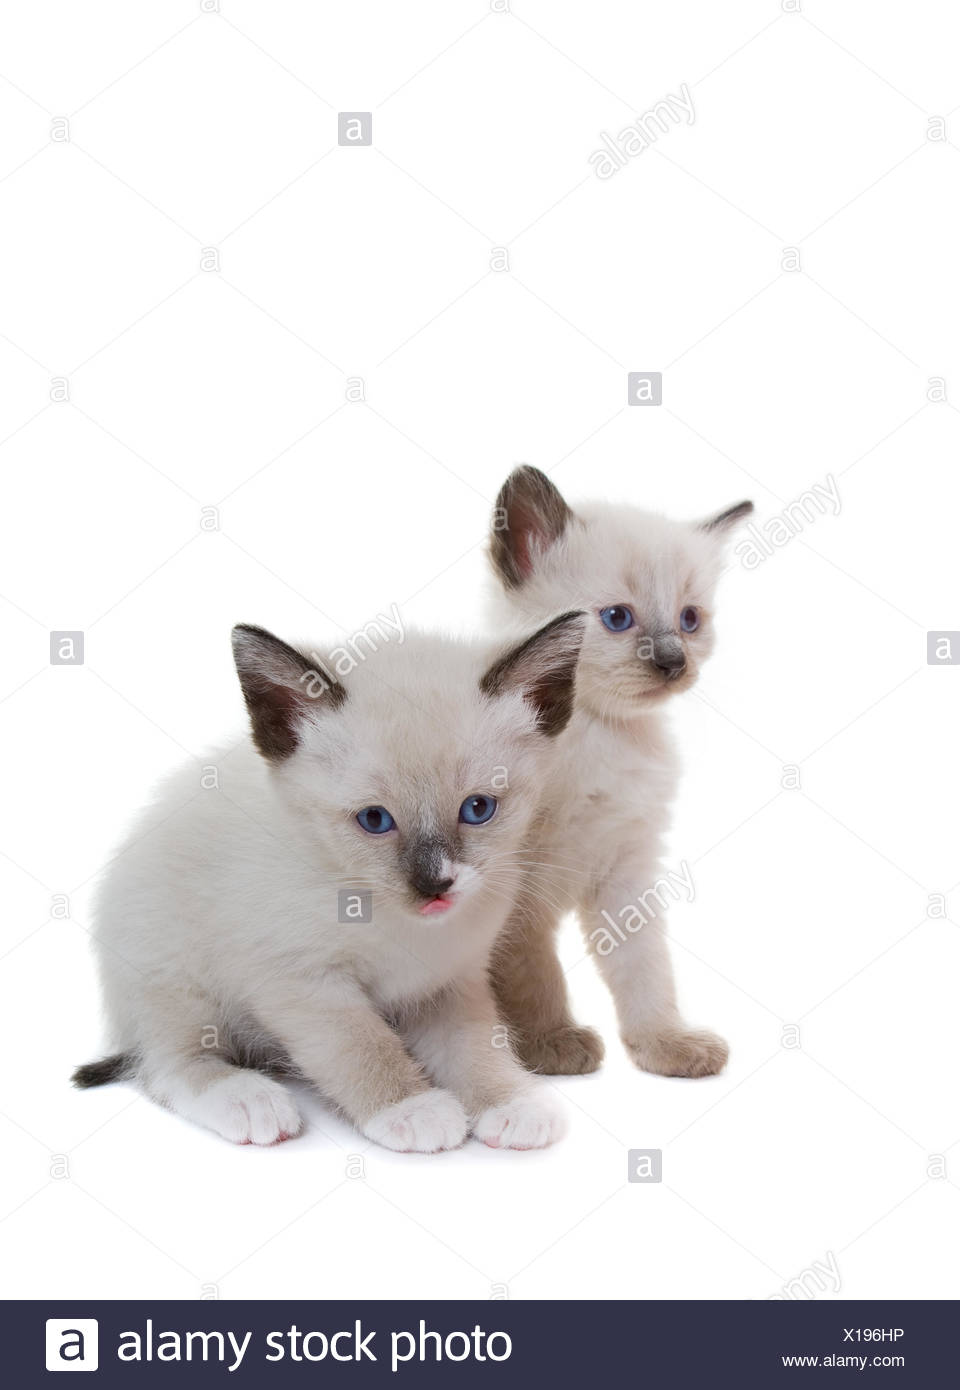 lilac cat baby kitten - Stock Image